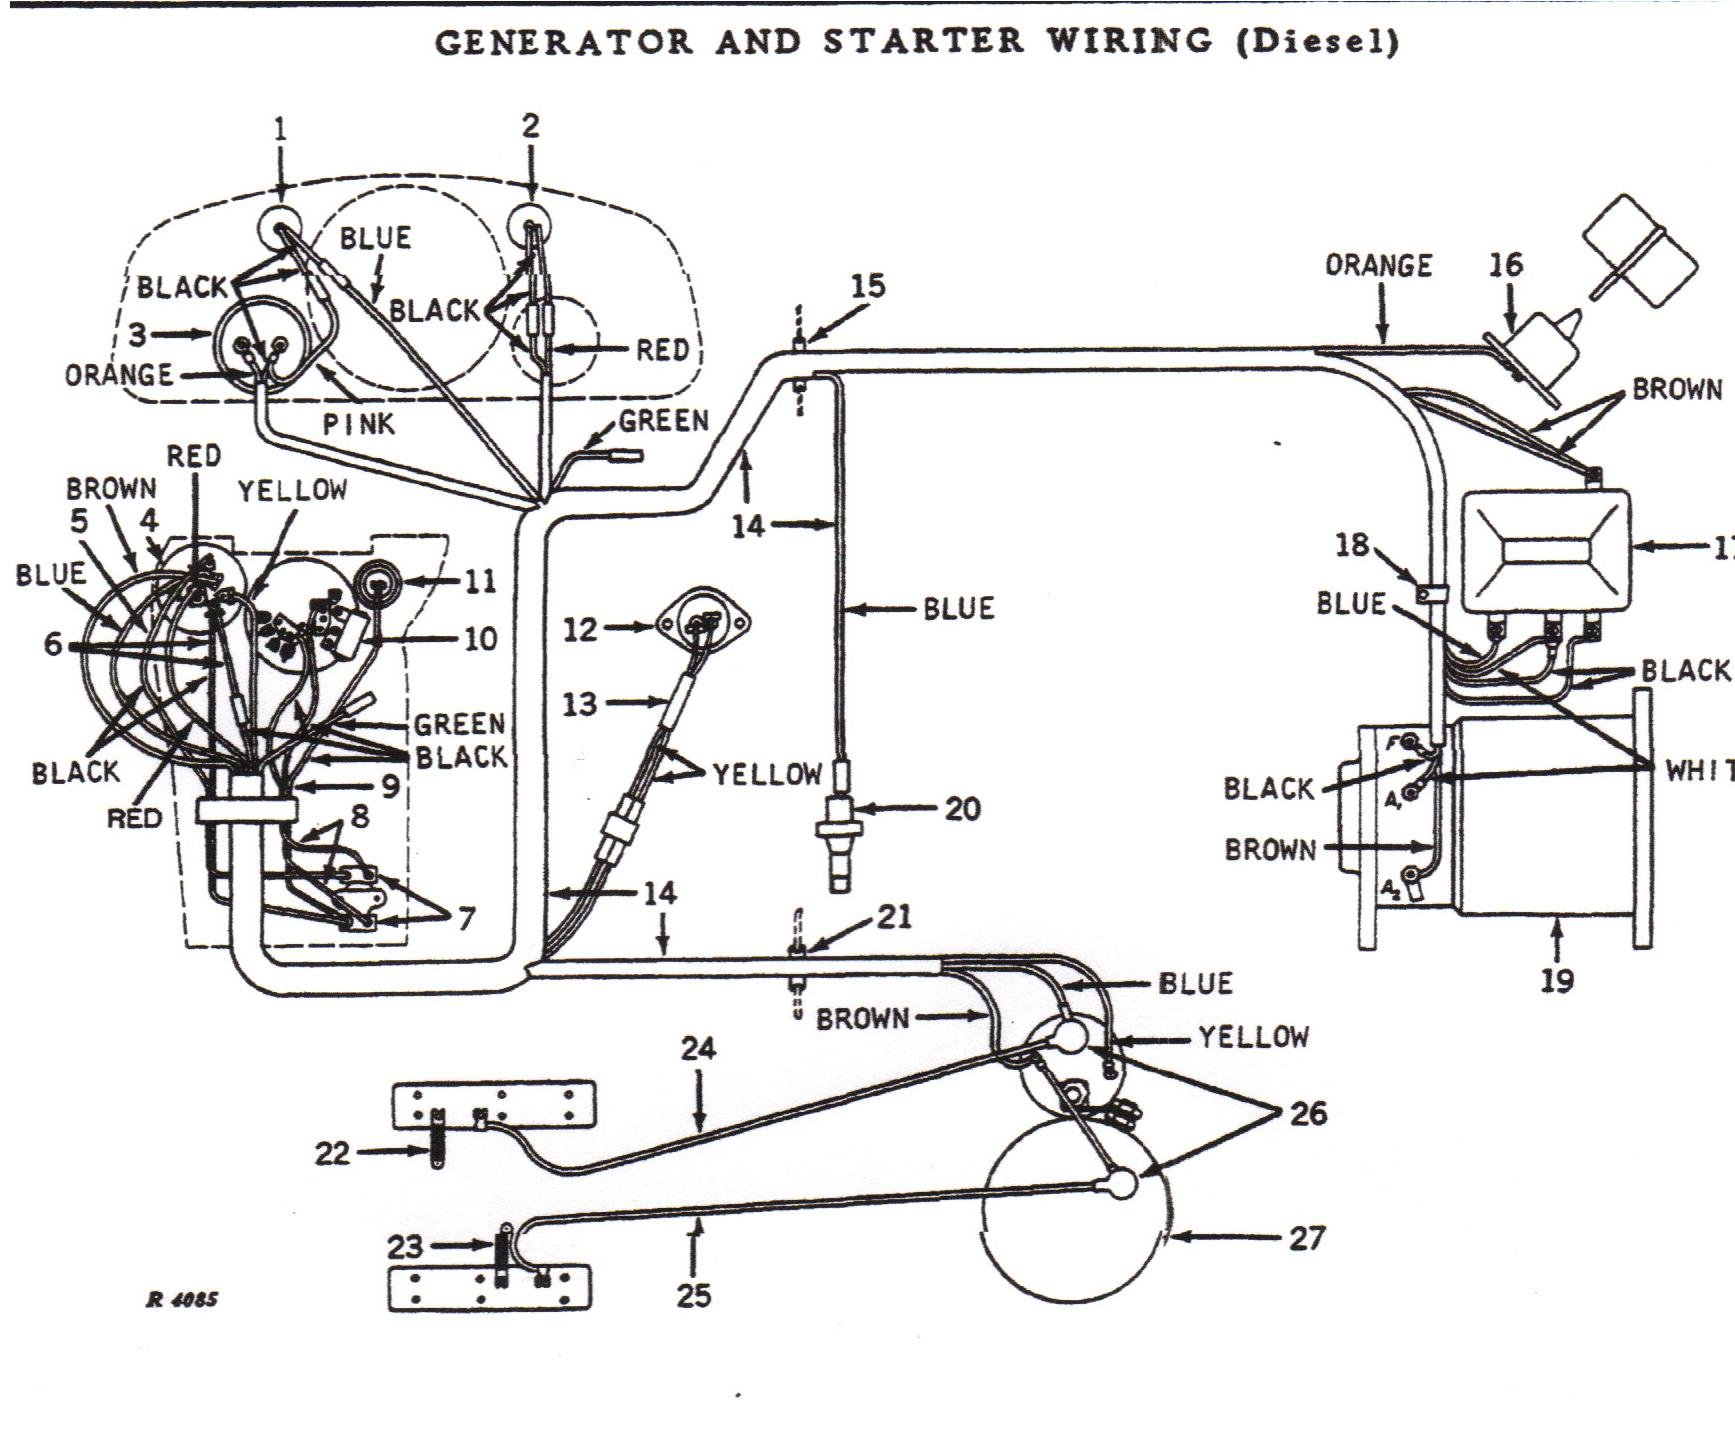 2014 01 15_164025_john_deere_4010_wiring i have a 1967 jd 3020 diesel when the starter had to be replaced john deere 2550 wiring diagram pdf at mifinder.co